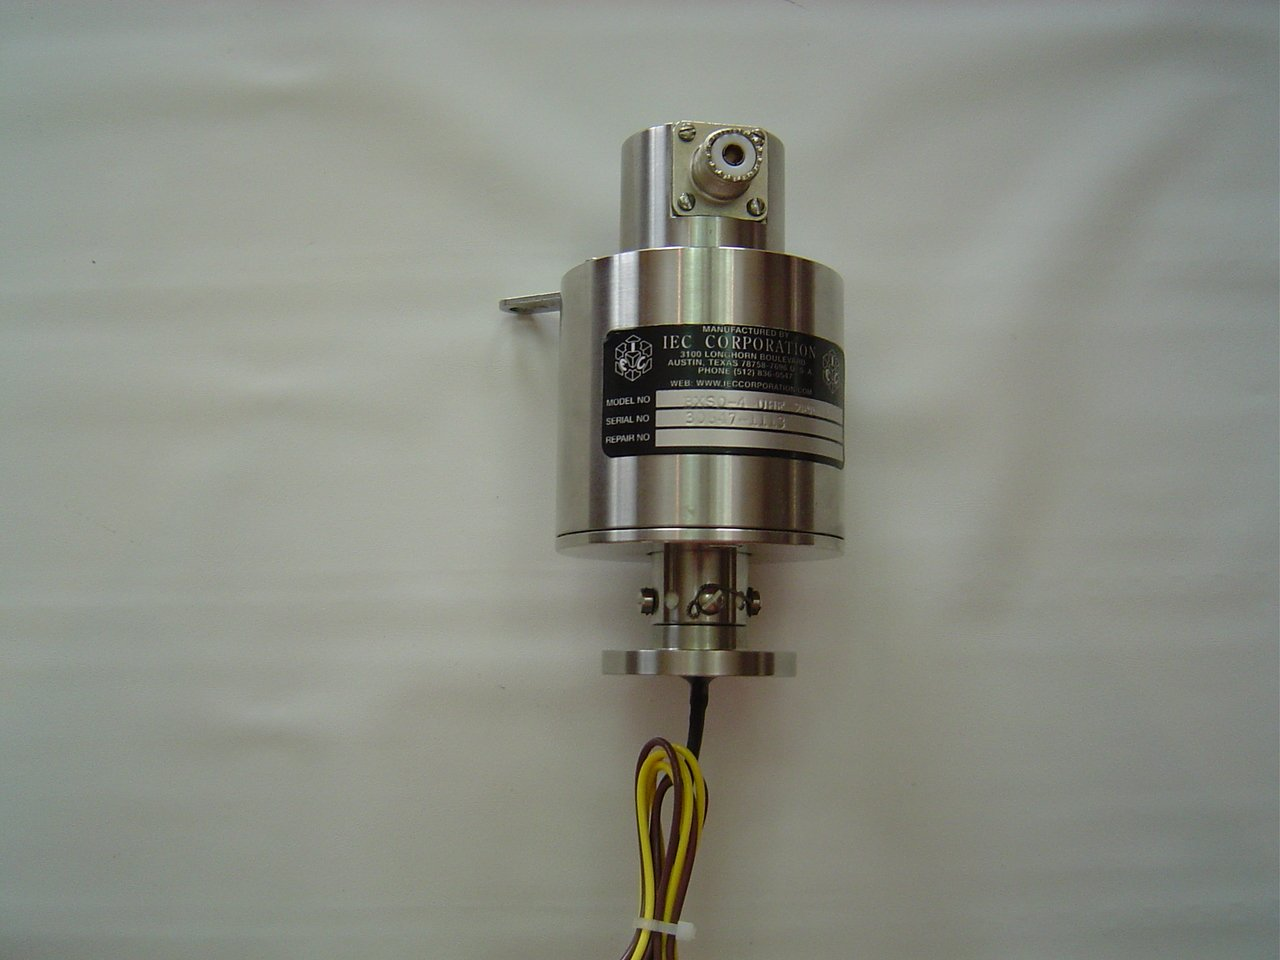 Stainless Steel Flange Mount Slip Ring UHF Connector